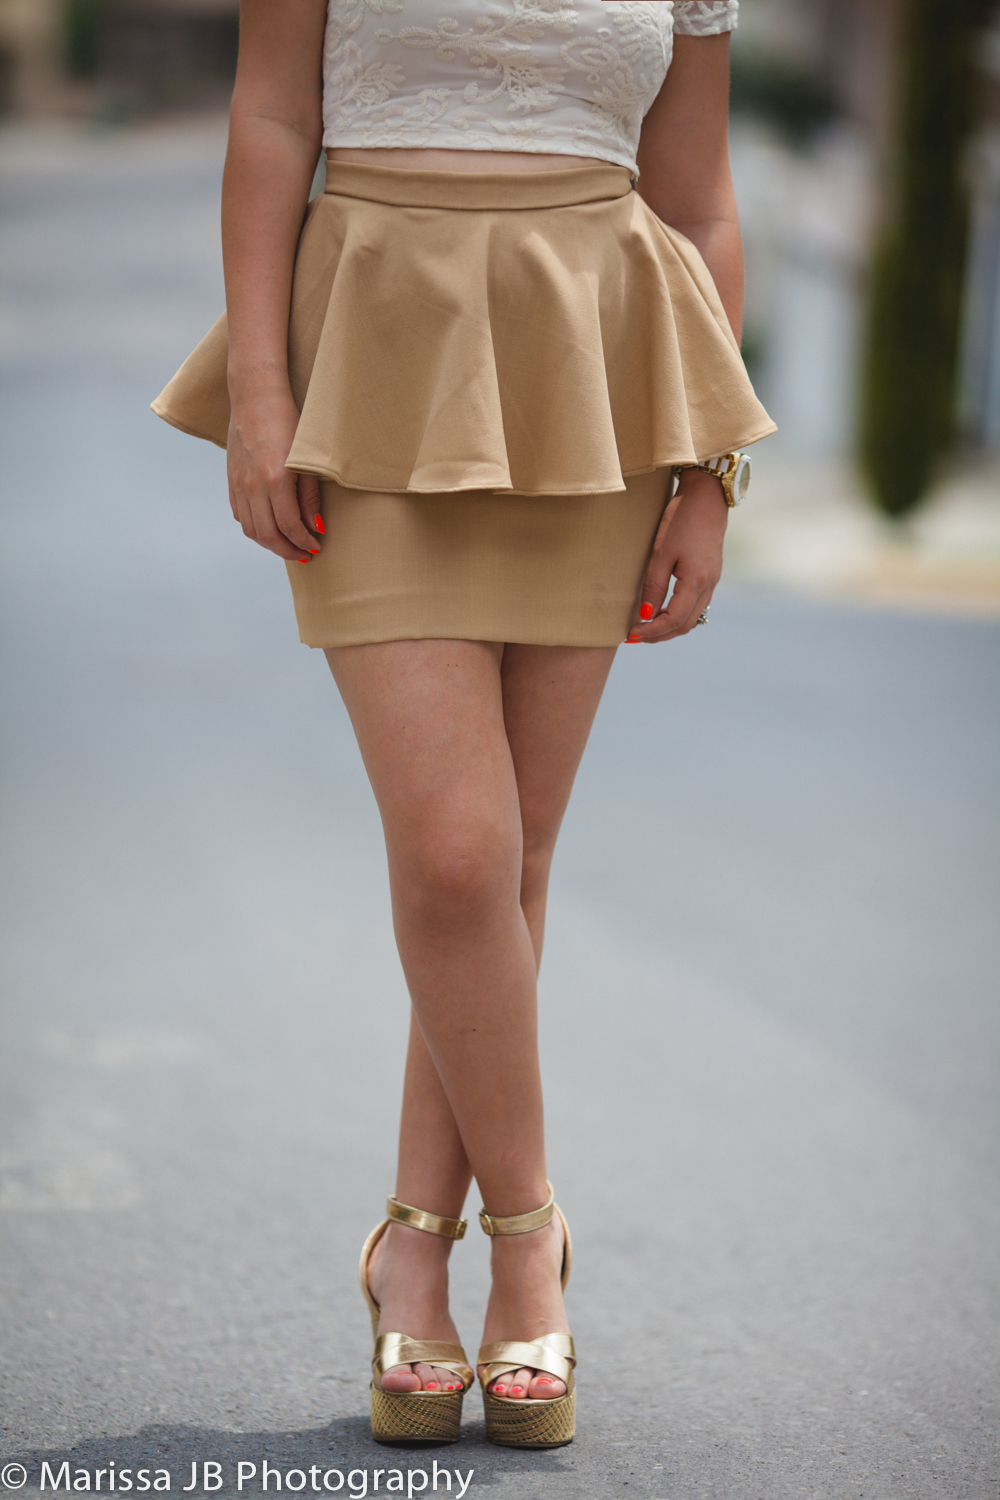 NN Look 6 Falda beige (6 of 8)